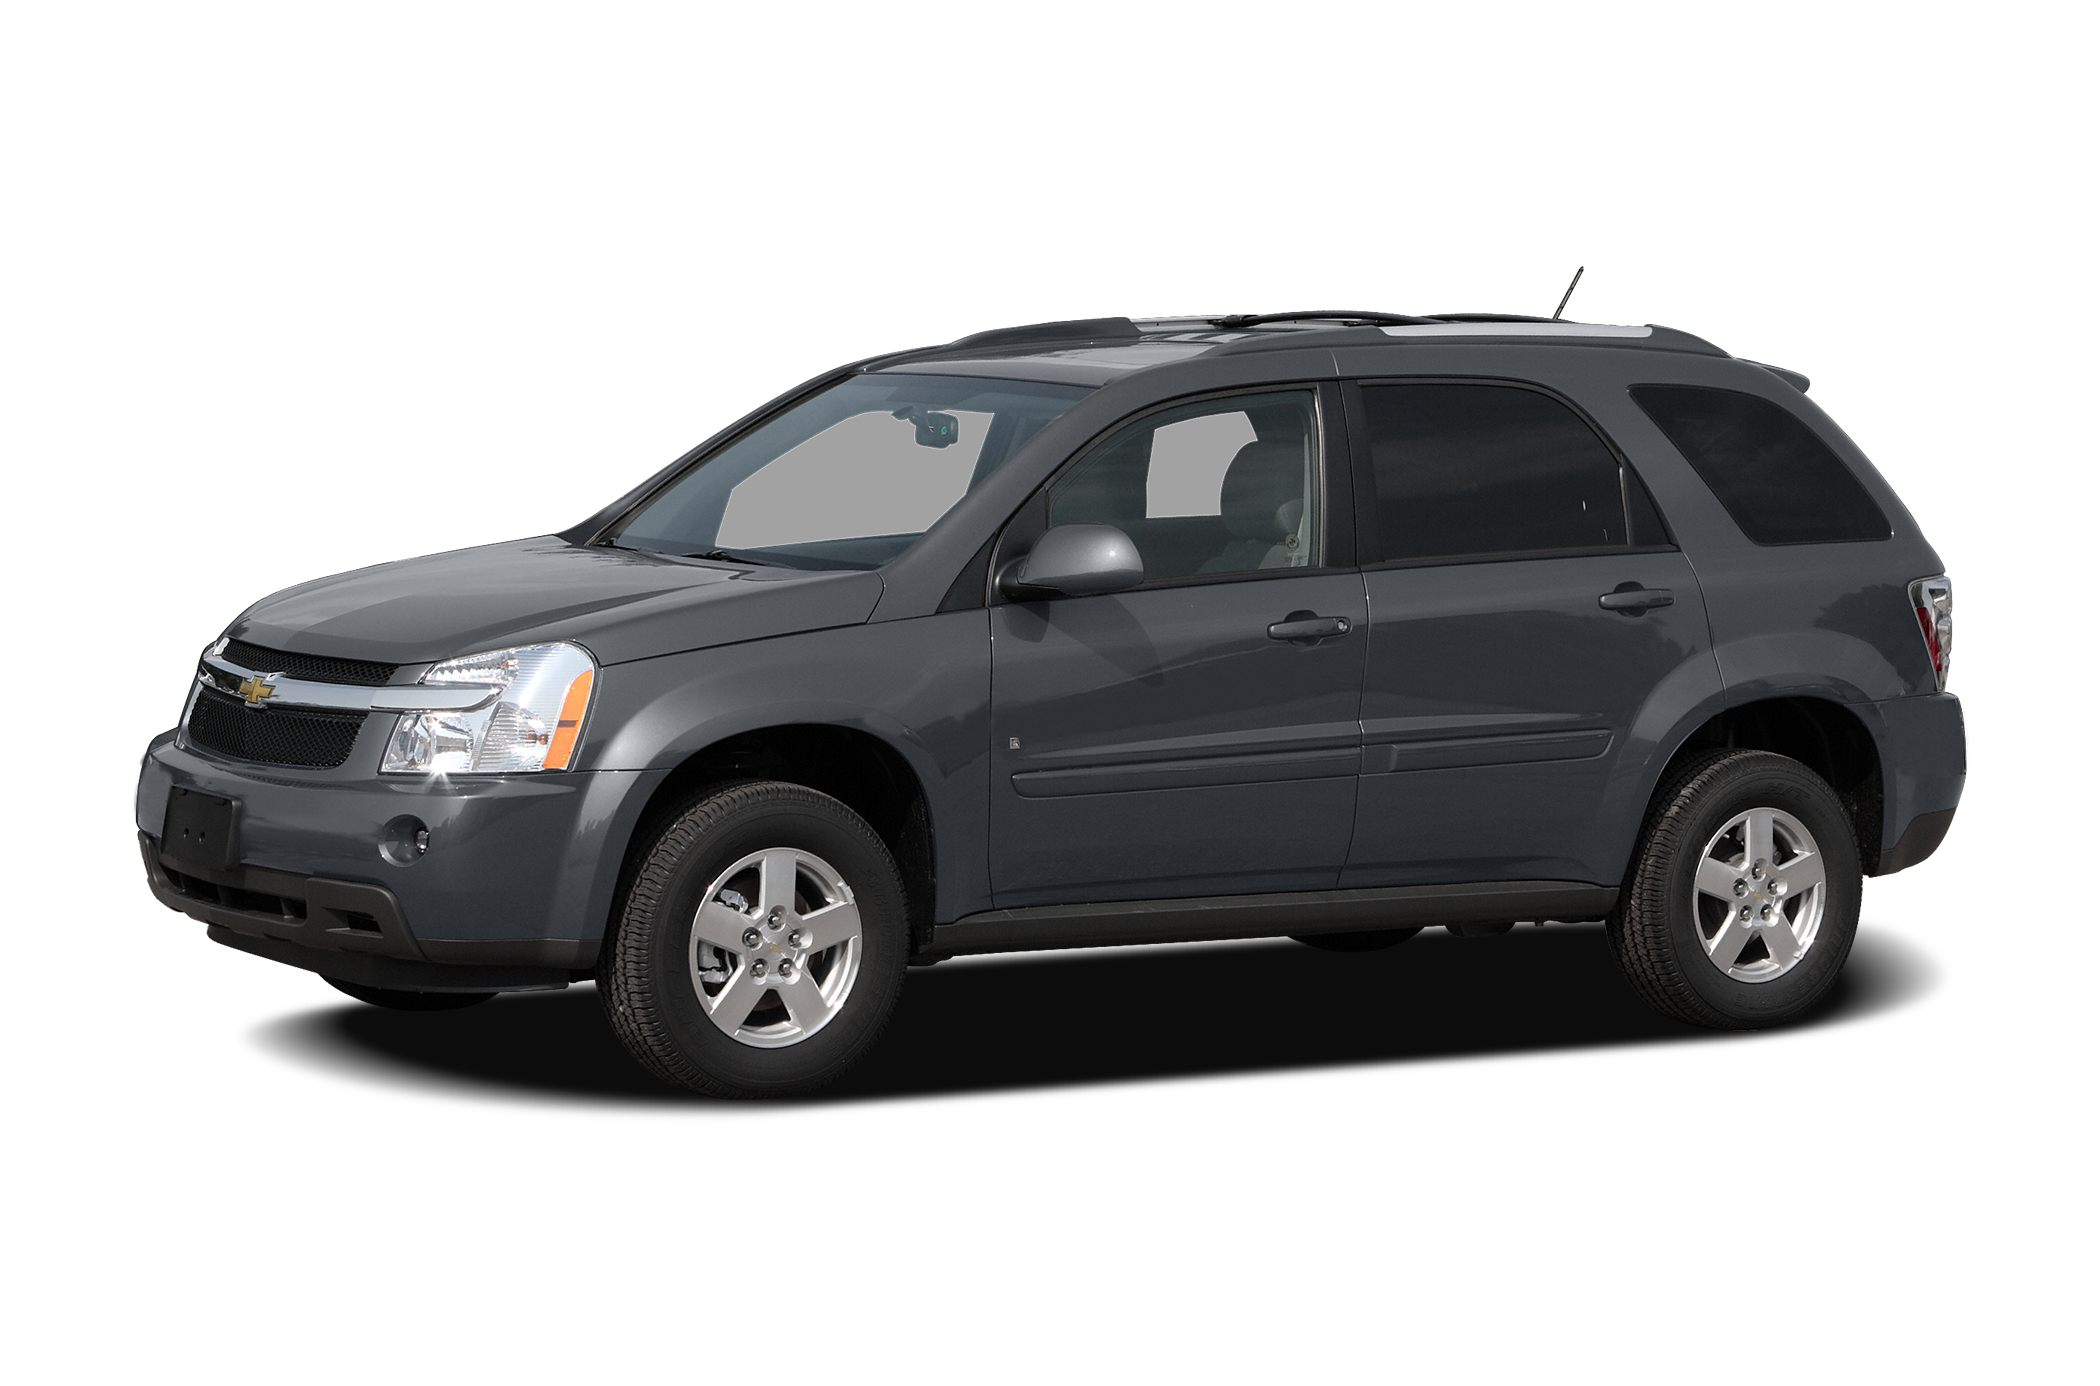 2008 Chevrolet Equinox Sport SUV for sale in Austin for $10,990 with 97,763 miles